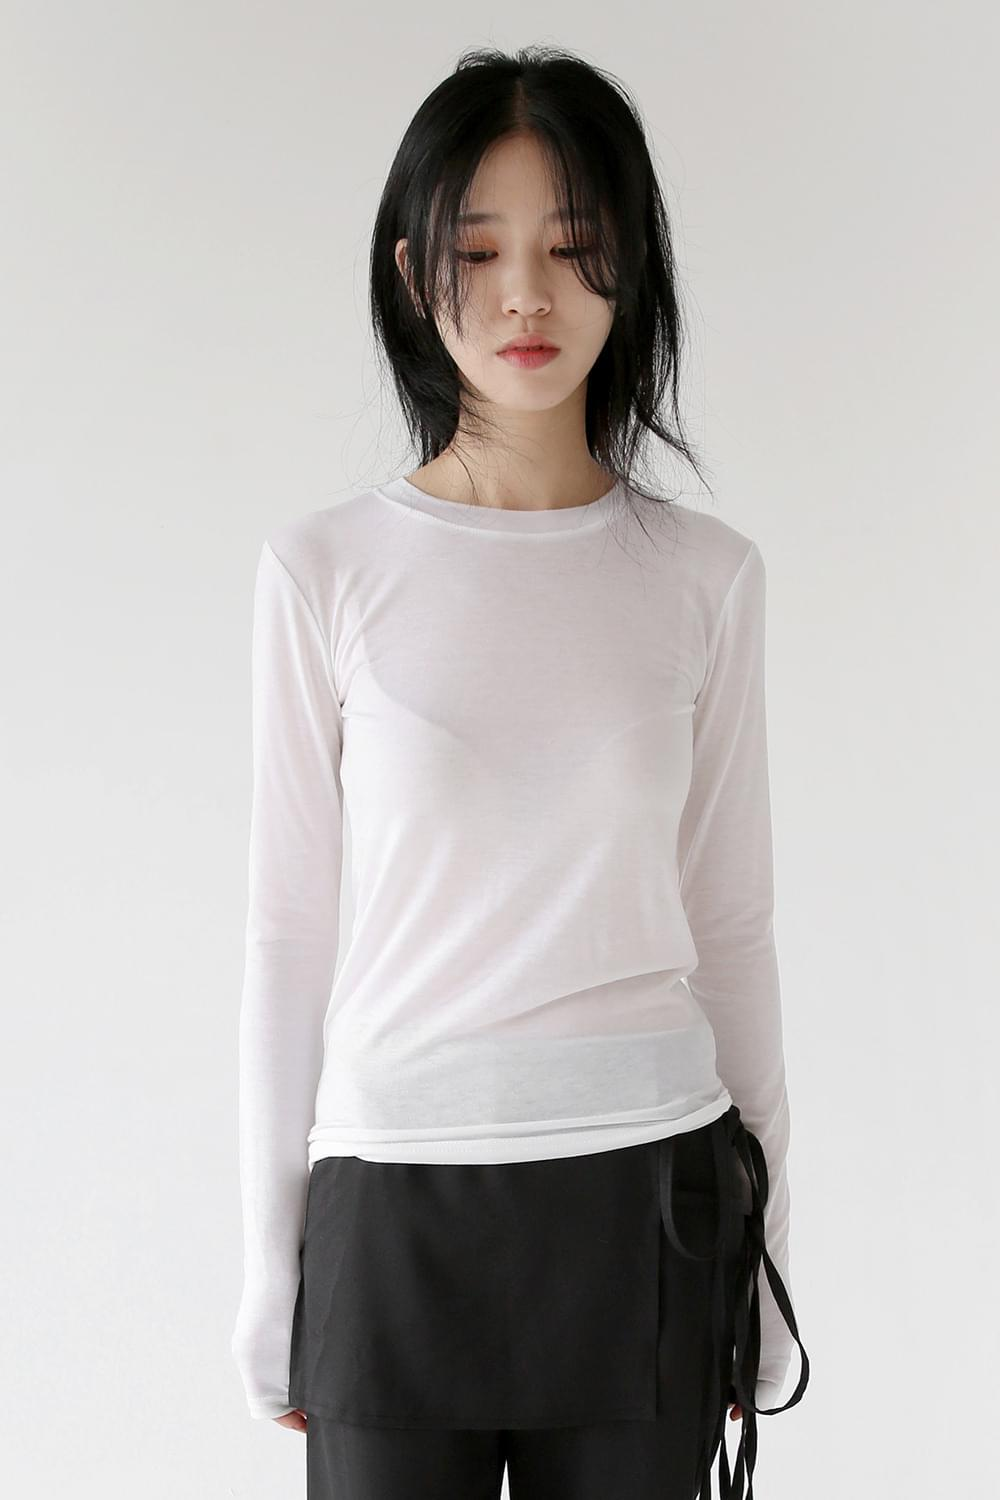 slinky tencel tee (4colors)